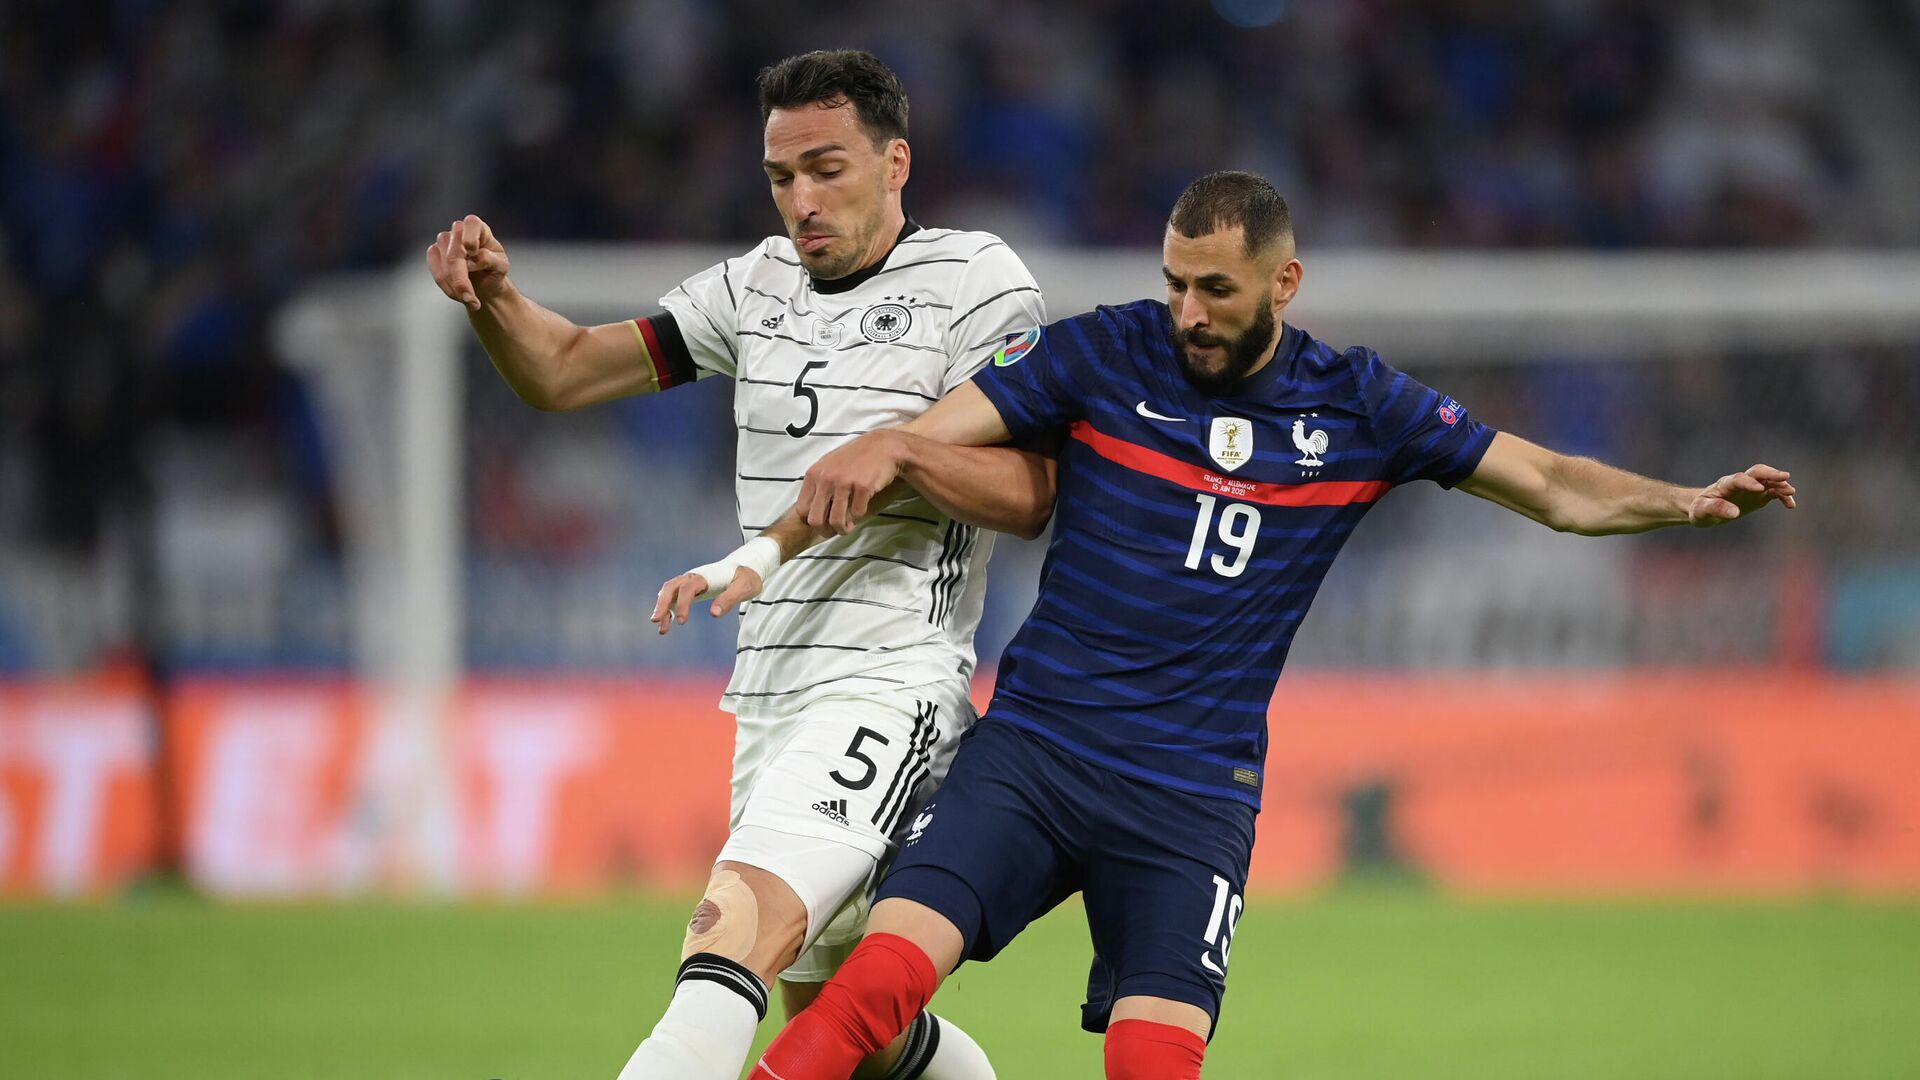 Soccer Football - Euro 2020 - Group F - France v Germany - Football Arena Munich, Munich, Germany - June 15, 2021 France's Karim Benzema in action with Germany's Mats Hummels Pool via REUTERS/Matthias Hangst - РИА Новости, 1920, 15.06.2021